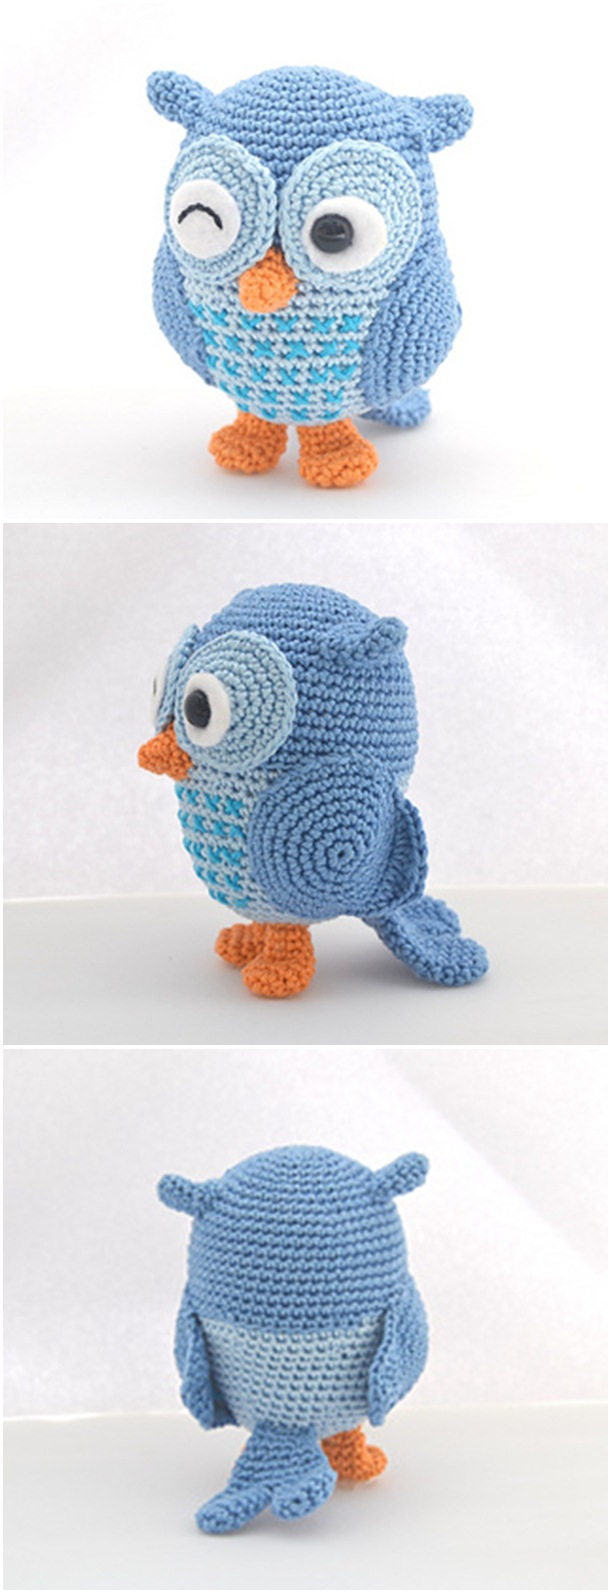 Cute owl crochet pattern for free. Best crochet animal pattern to start with. Amigurumi crochet pattern ideas for baby animals.